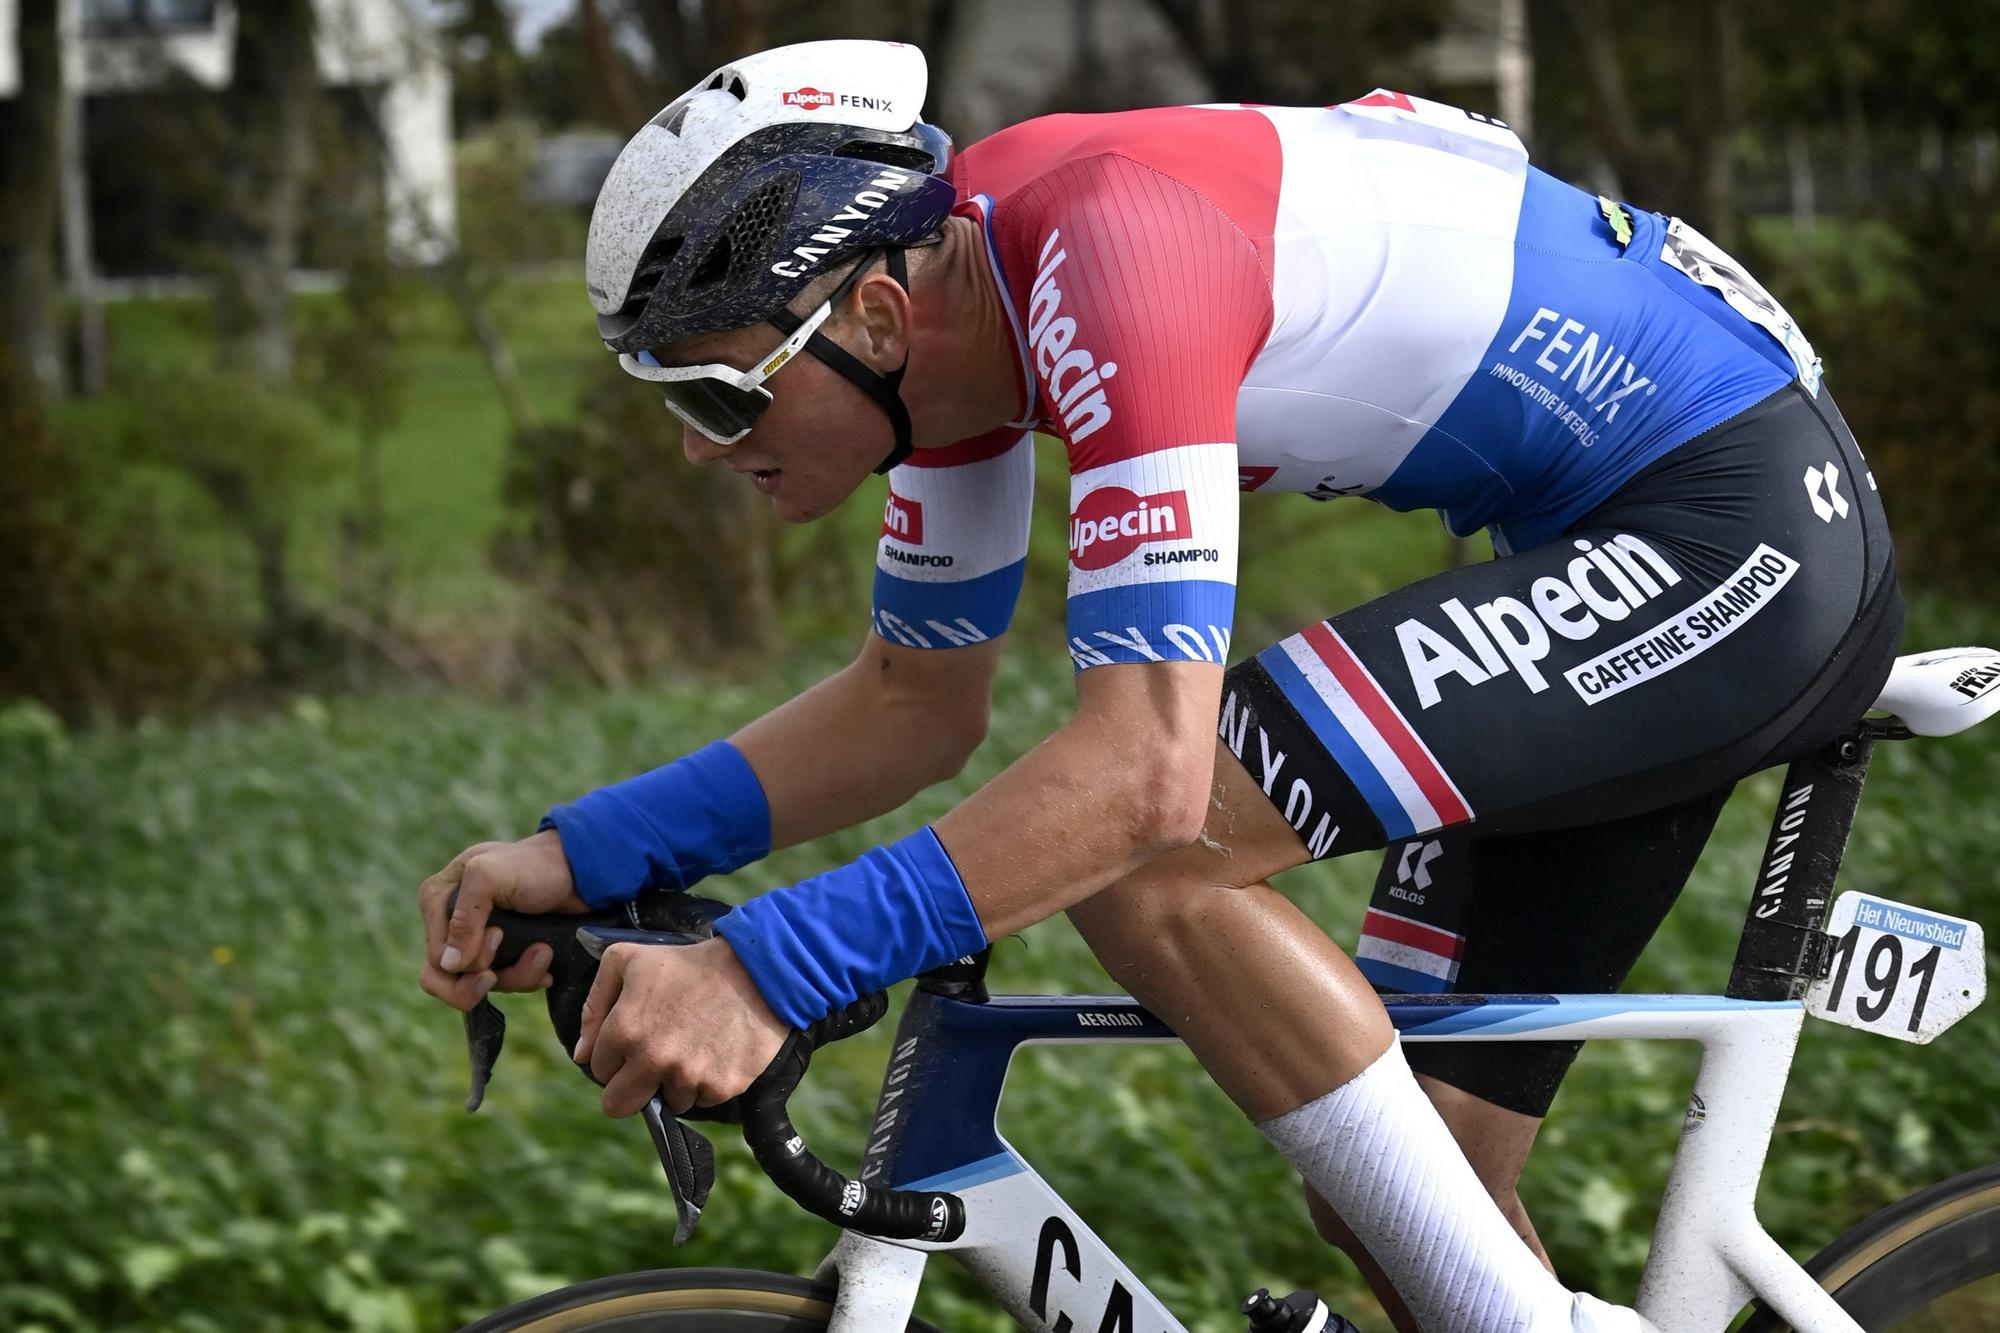 Dutch road-race champion Mathieu van der Poel (Alpecin-Fenix) at the 2020 Driedaagse Brugge-De Panne before he crashed out of the Belgian race and ended his road season